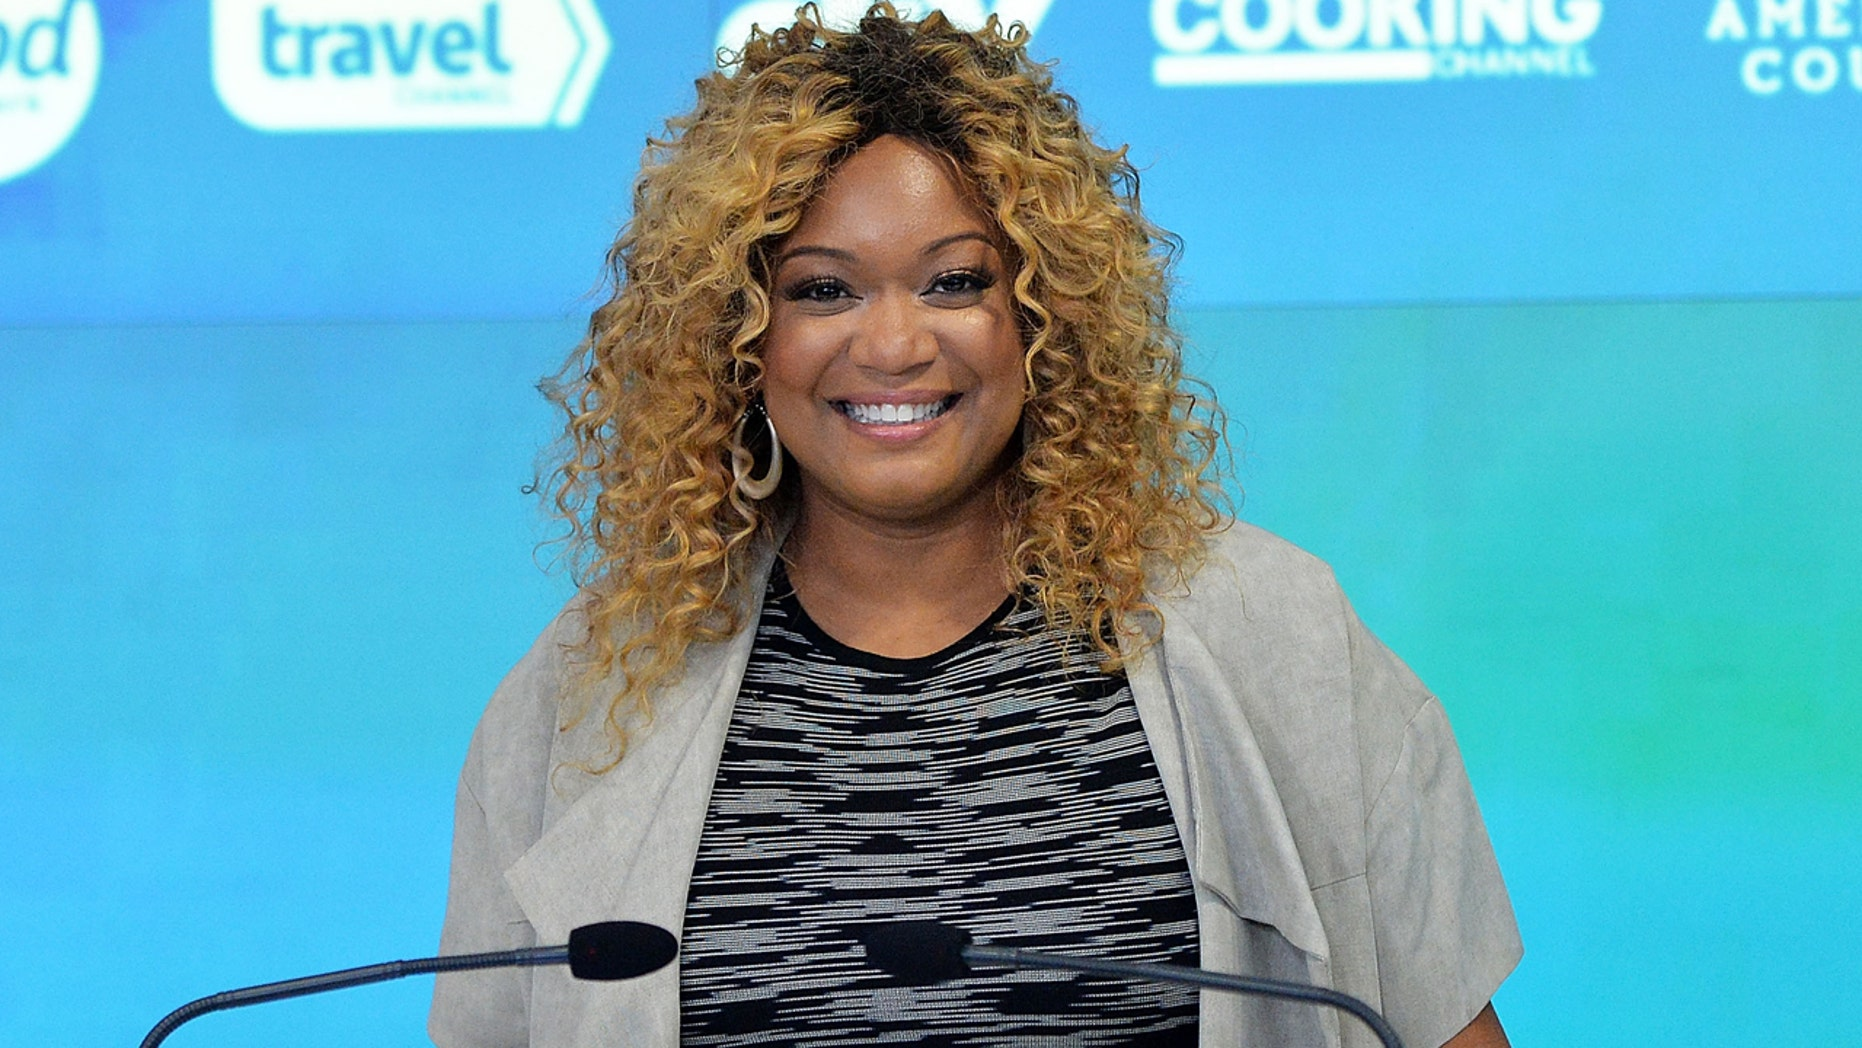 NEW YORK, NY - JUNE 02:  Food Network personality Sunny Anderson rings the NASDAQ Opening Bell at NASDAQ on June 2, 2016 in New York City.  (Photo by Slaven Vlasic/Getty Images)